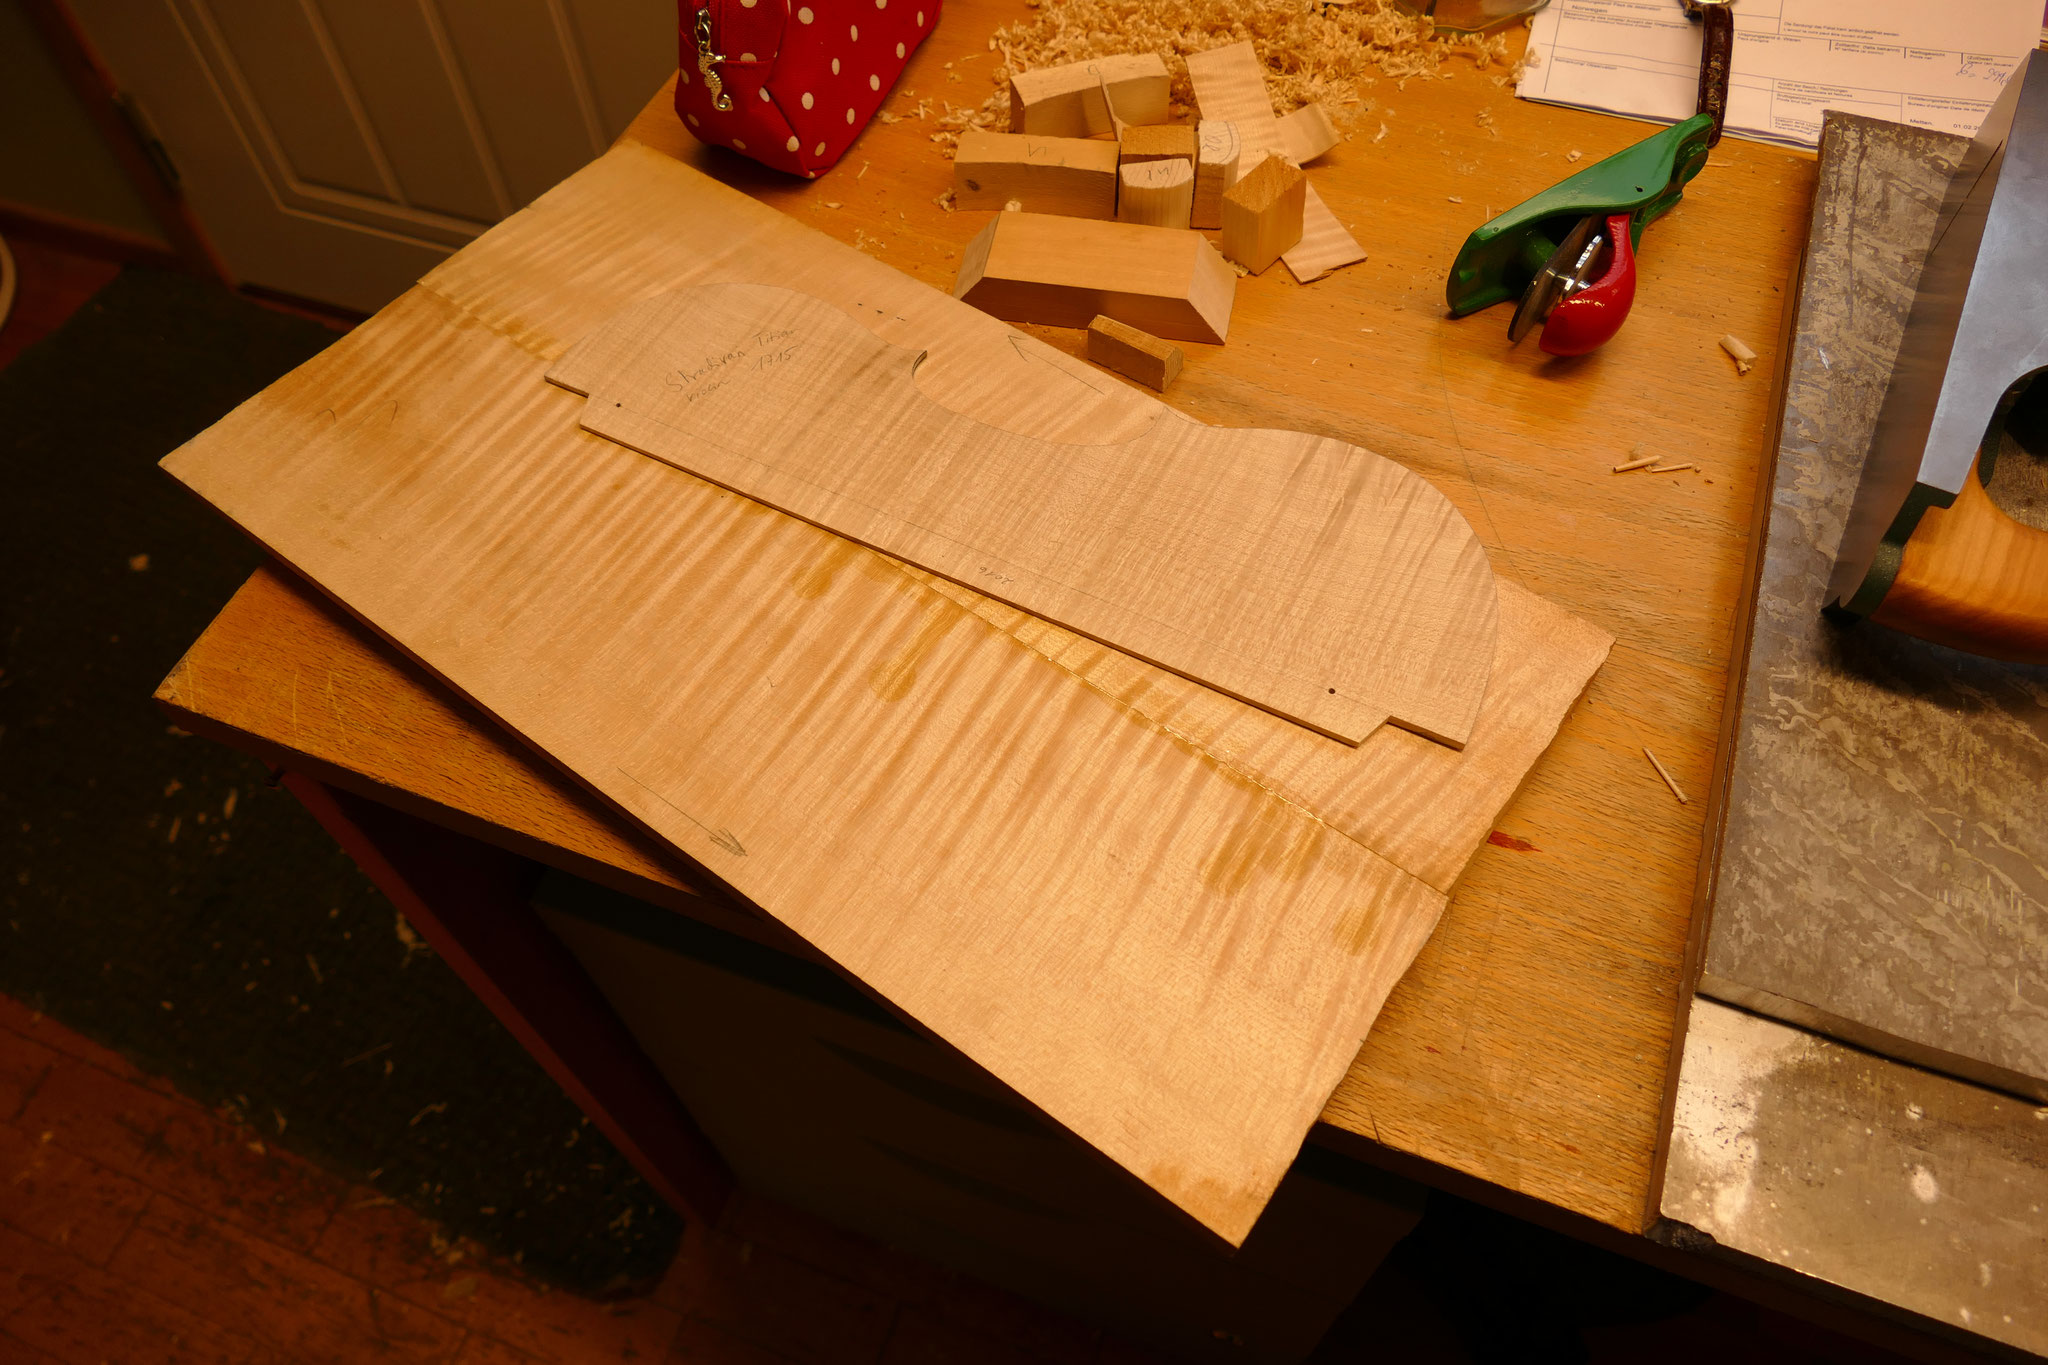 Glued bottom plates